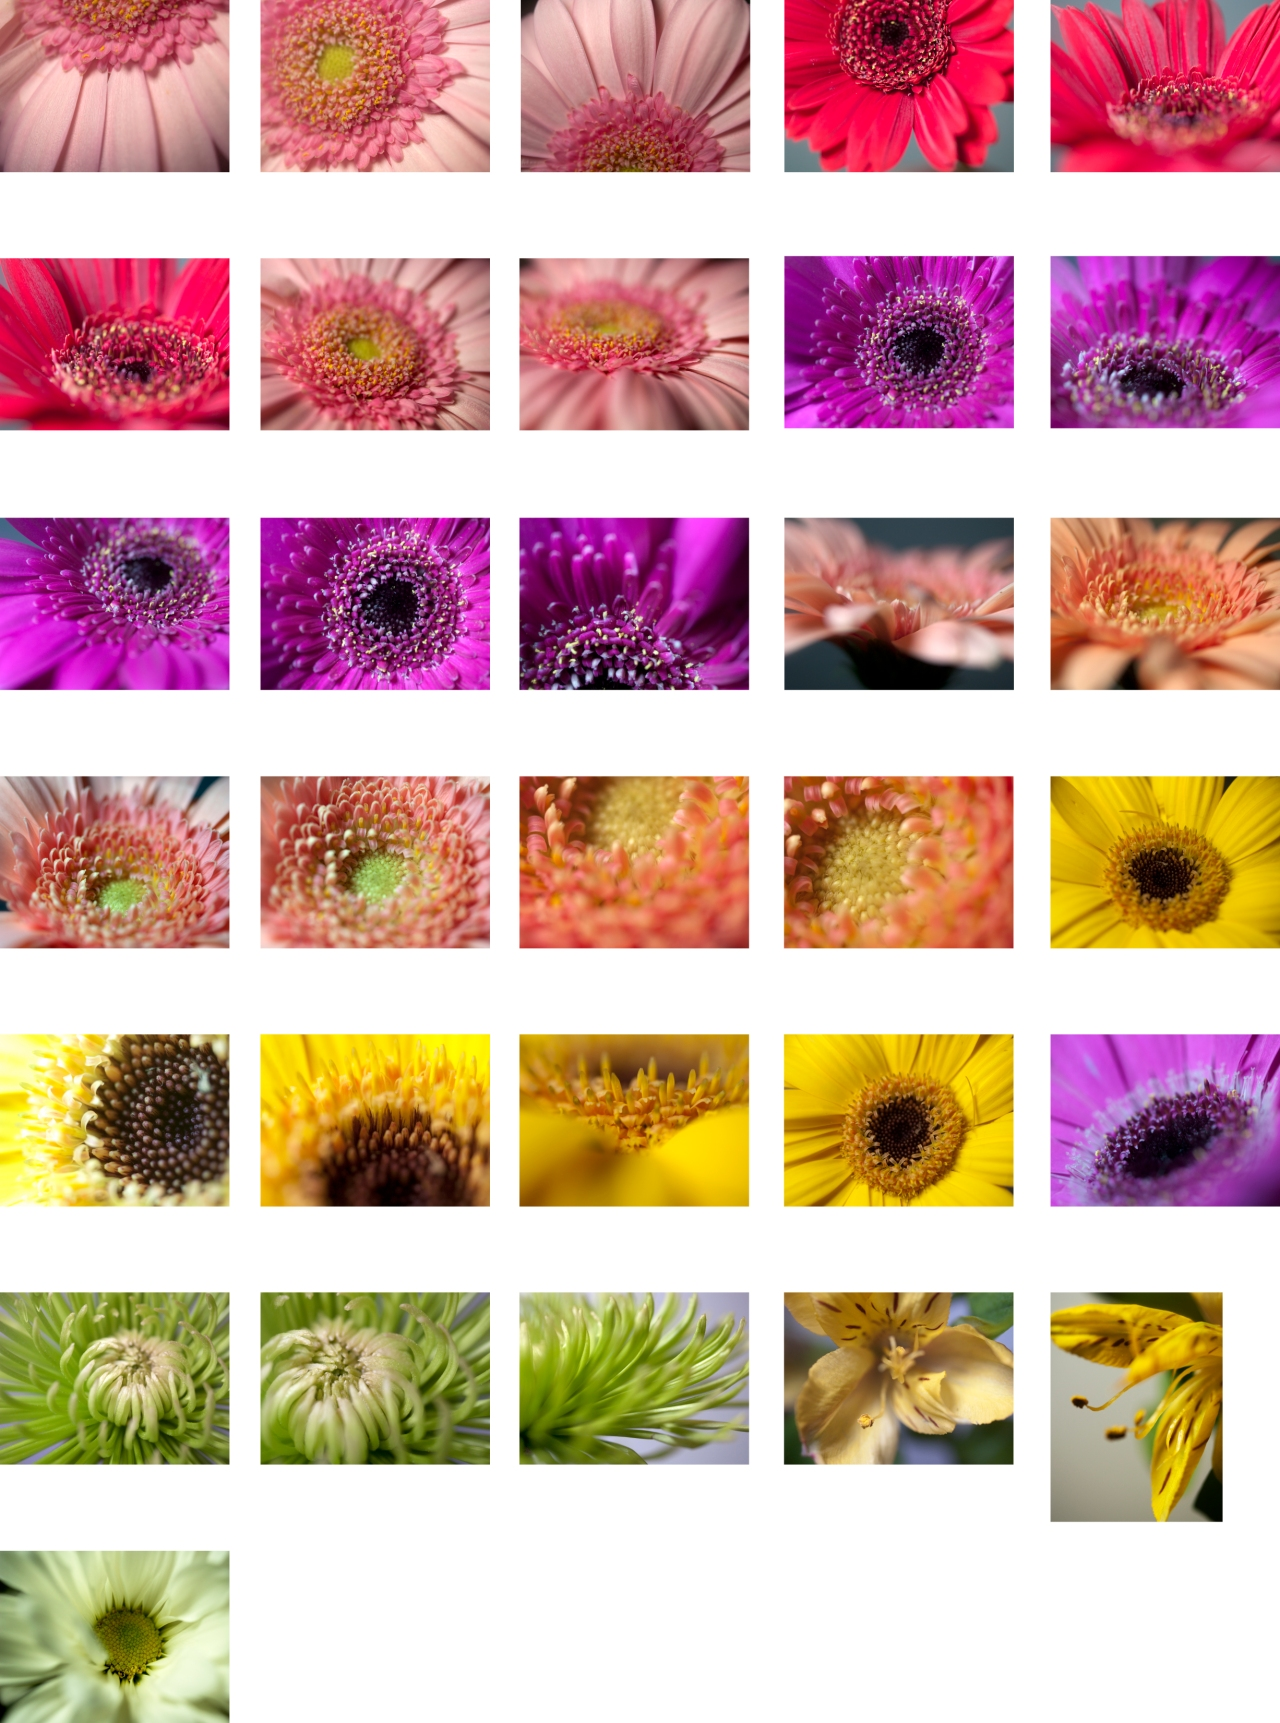 365 Days of Flowers: August Overview